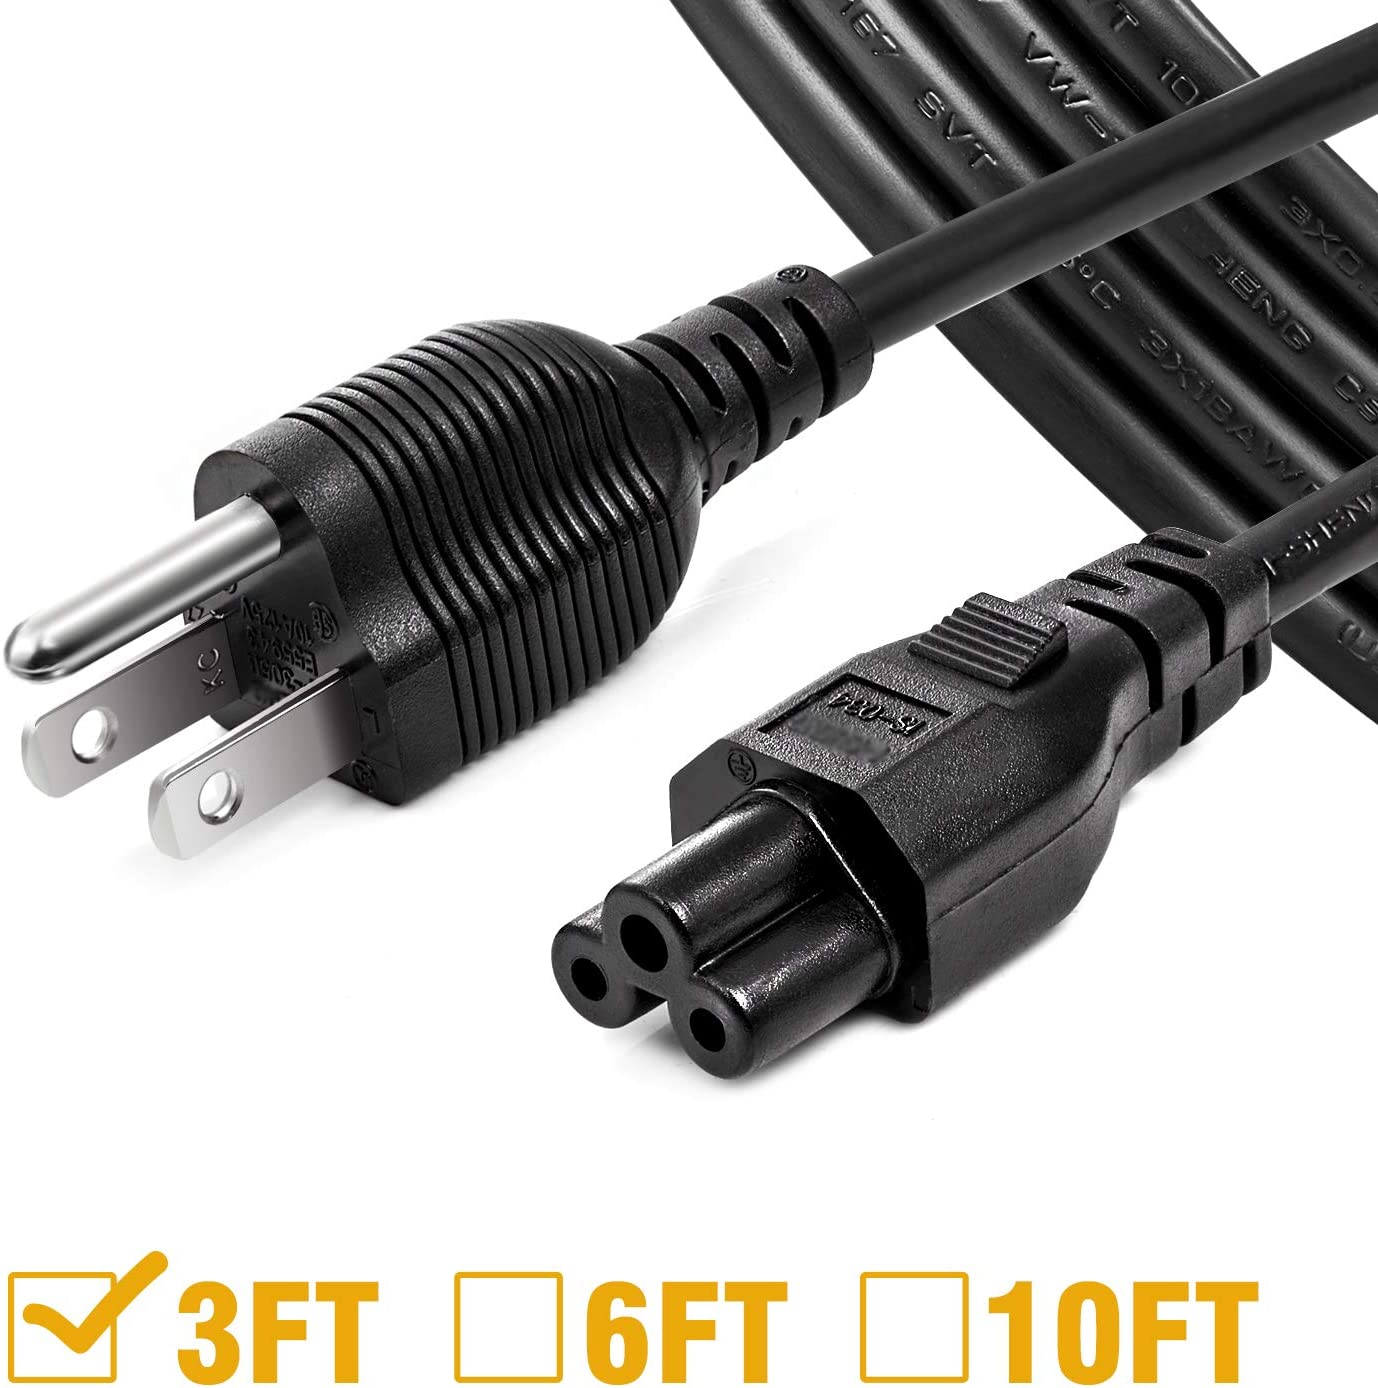 [UL Listed] Chanzon 3ft Mickey Mouse Universal AC Power Cord 3 Prong (NEMA 5-15P to IEC320C5) 10A 125V for LG TV,Dell Toshiba Laptop Notebook 3-pin 18 awg